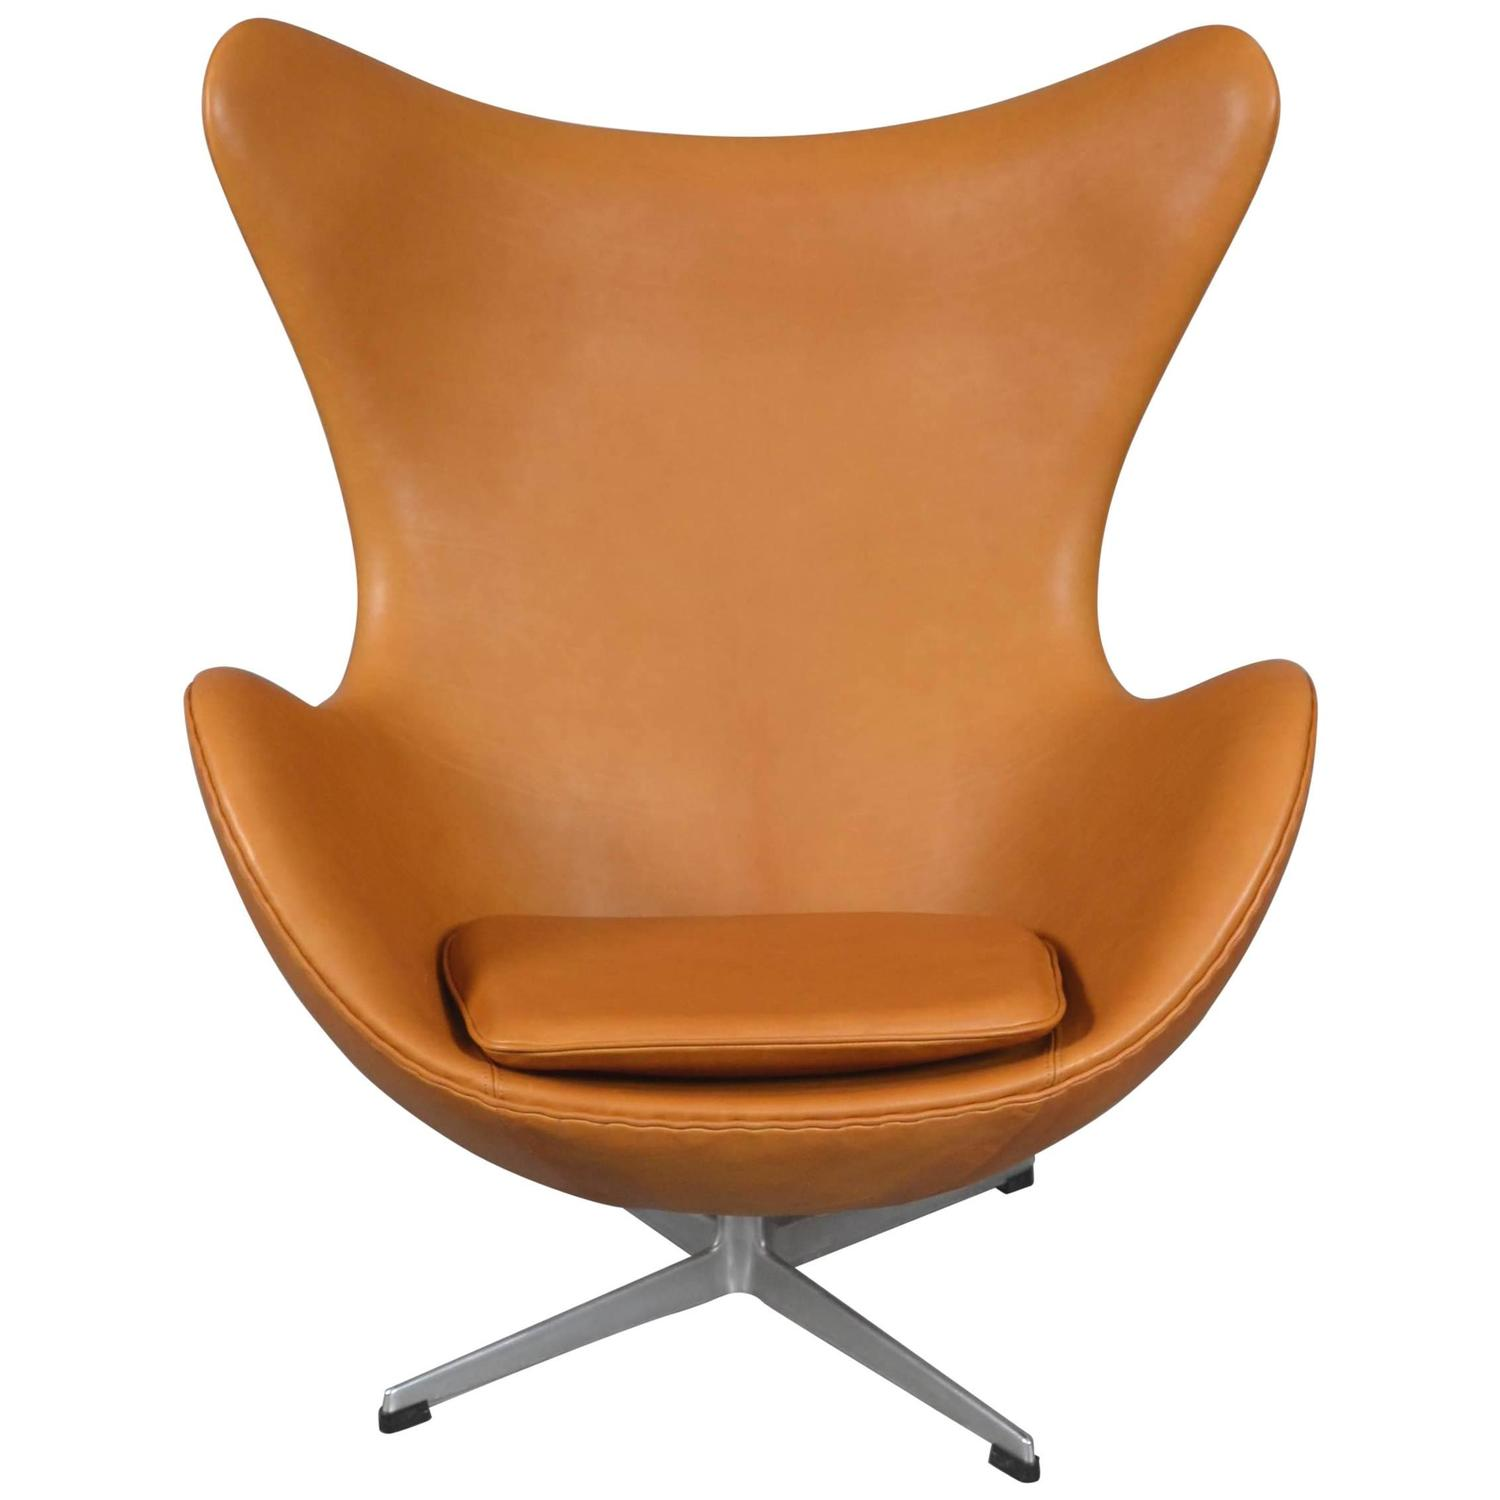 Arne jacobsen egg chair leather - Arne Jacobsen Egg Chair By Fritz Hansen Circa 1970